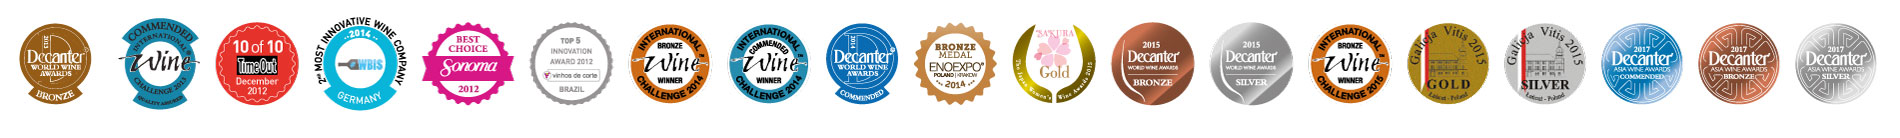 awards and recognitions wine medals wine with spirit